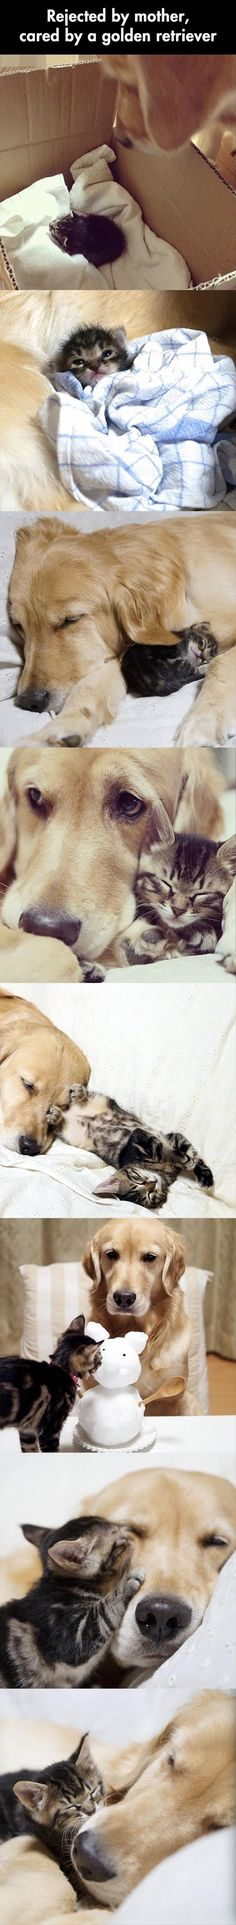 Humans aren't the only ones who adopt...